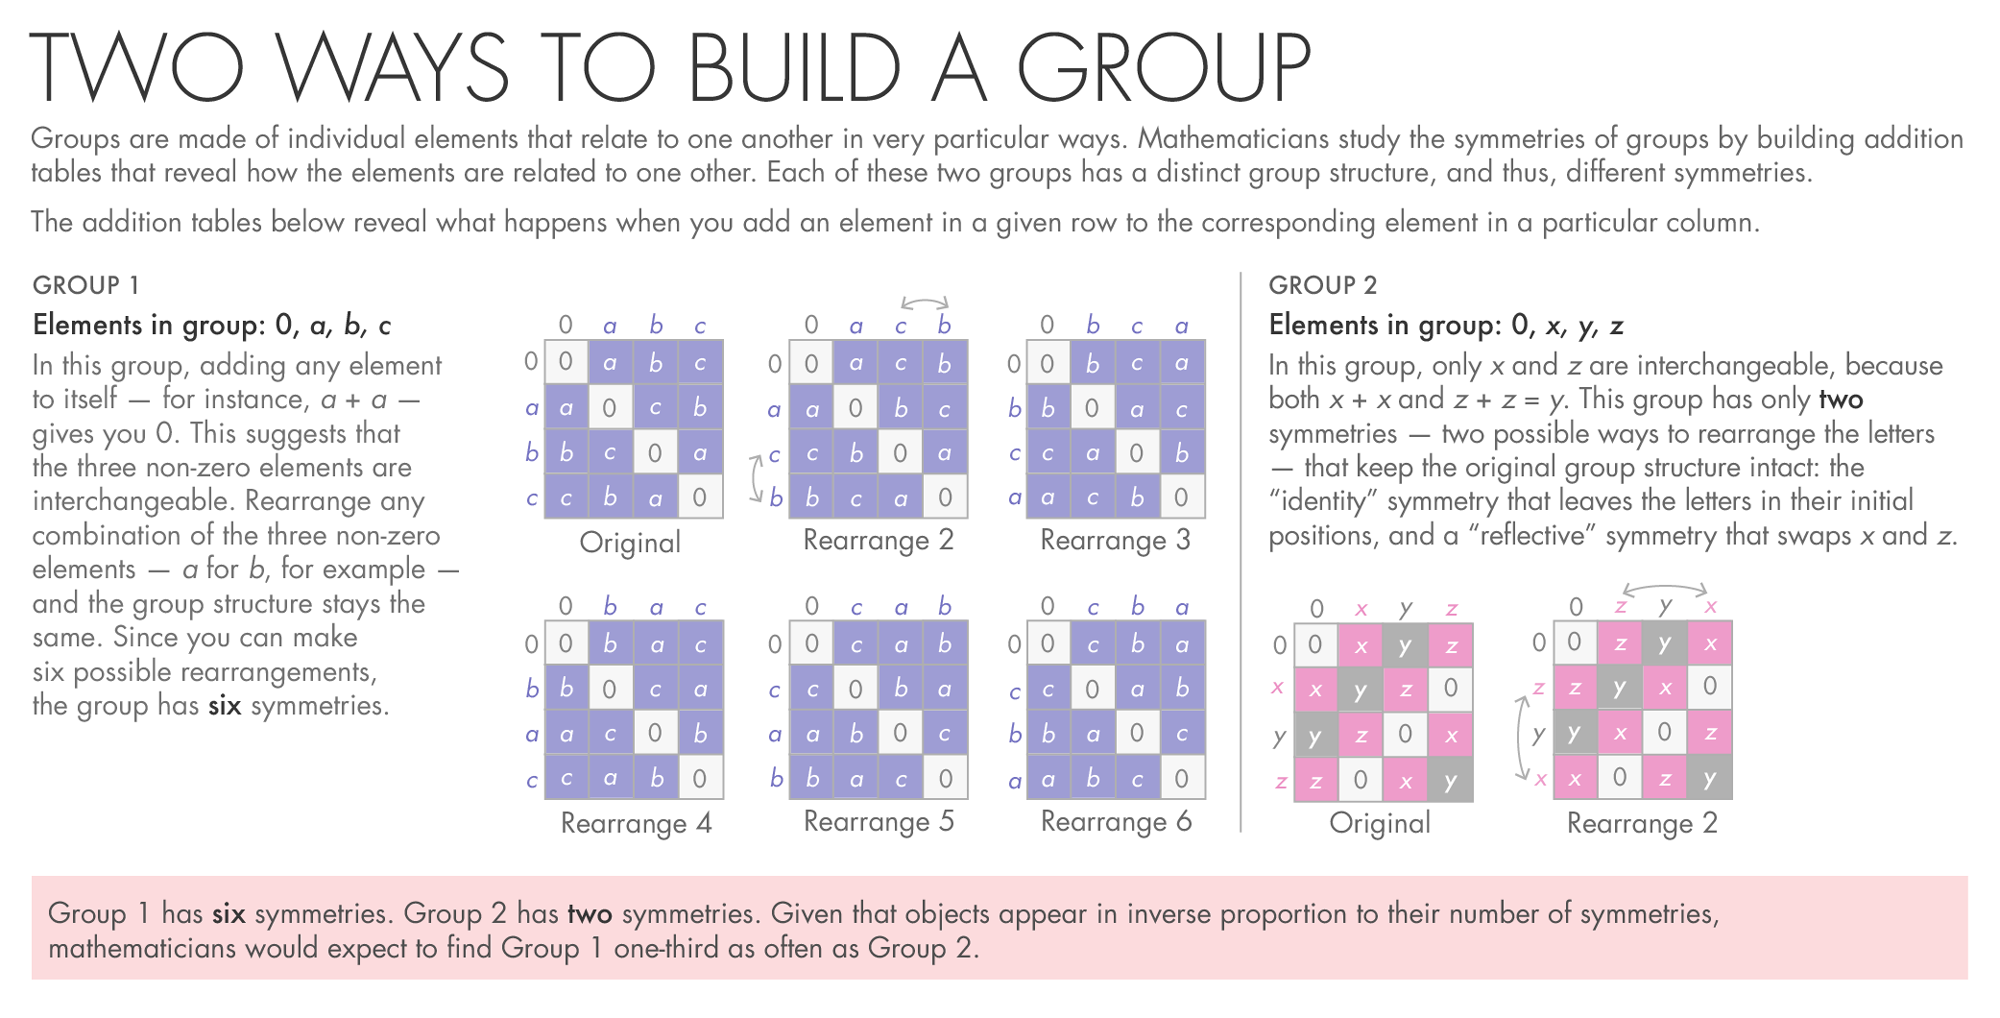 Using grids to show groups